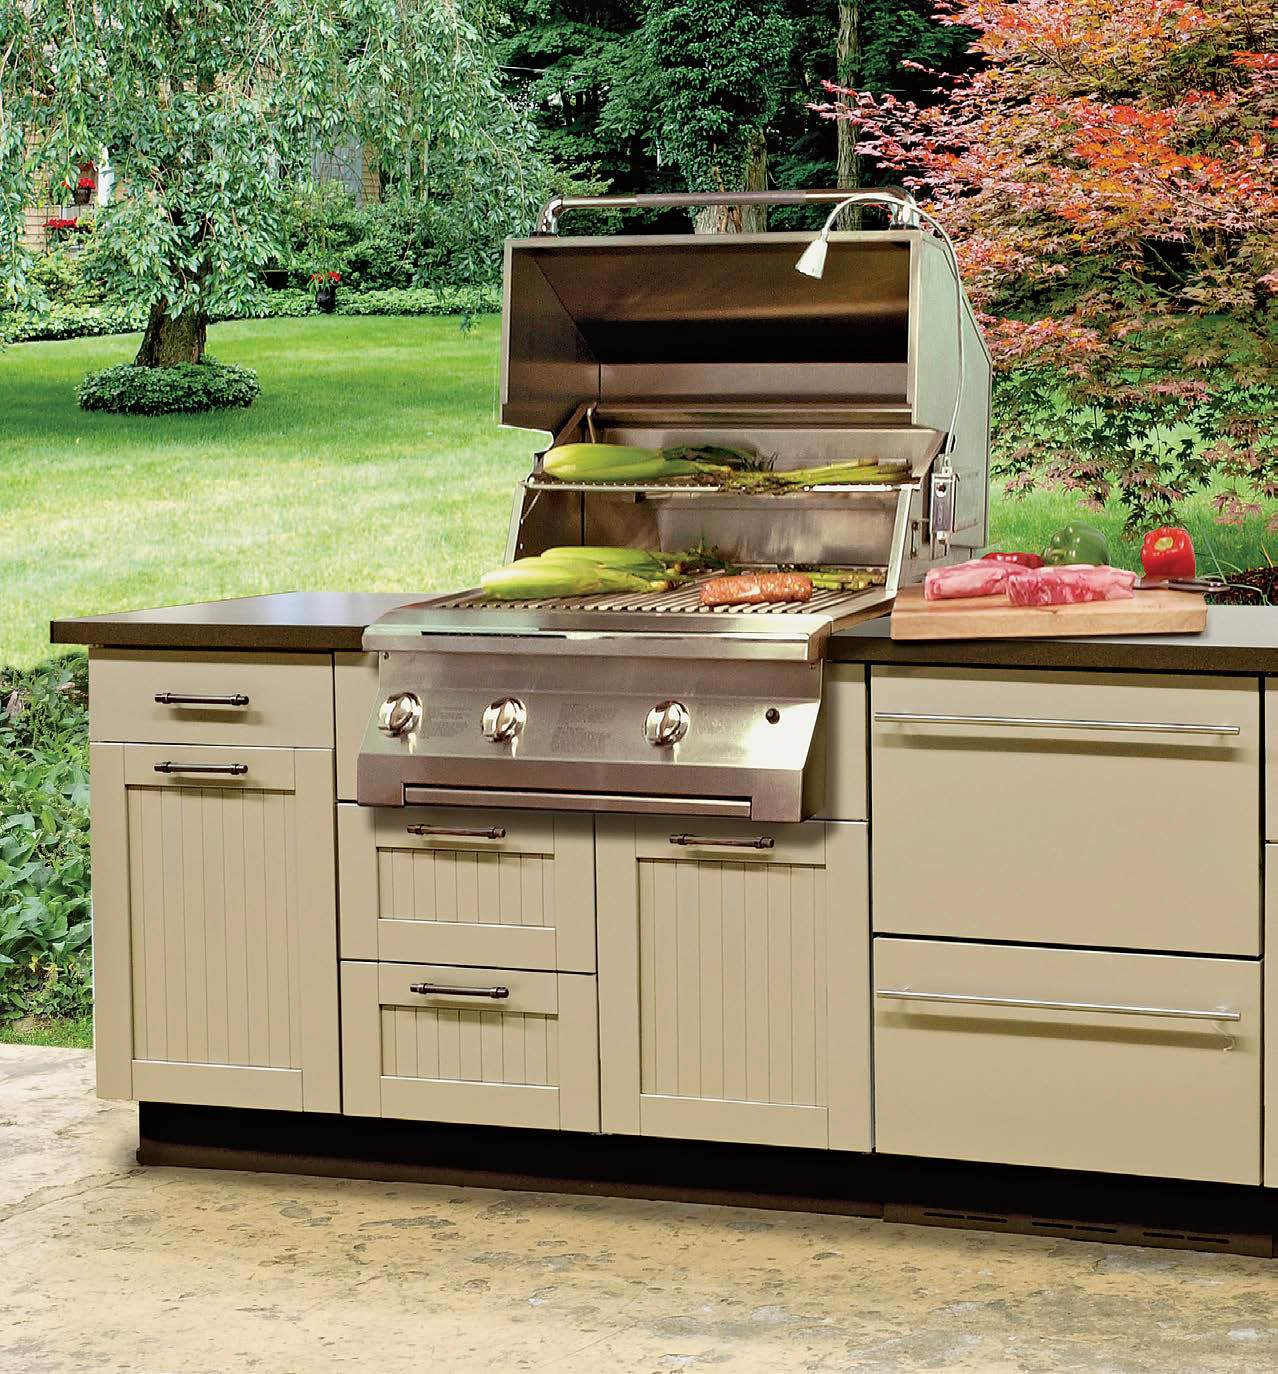 Close up look at this outdoor kitchen's bar setup with a classy countertop.